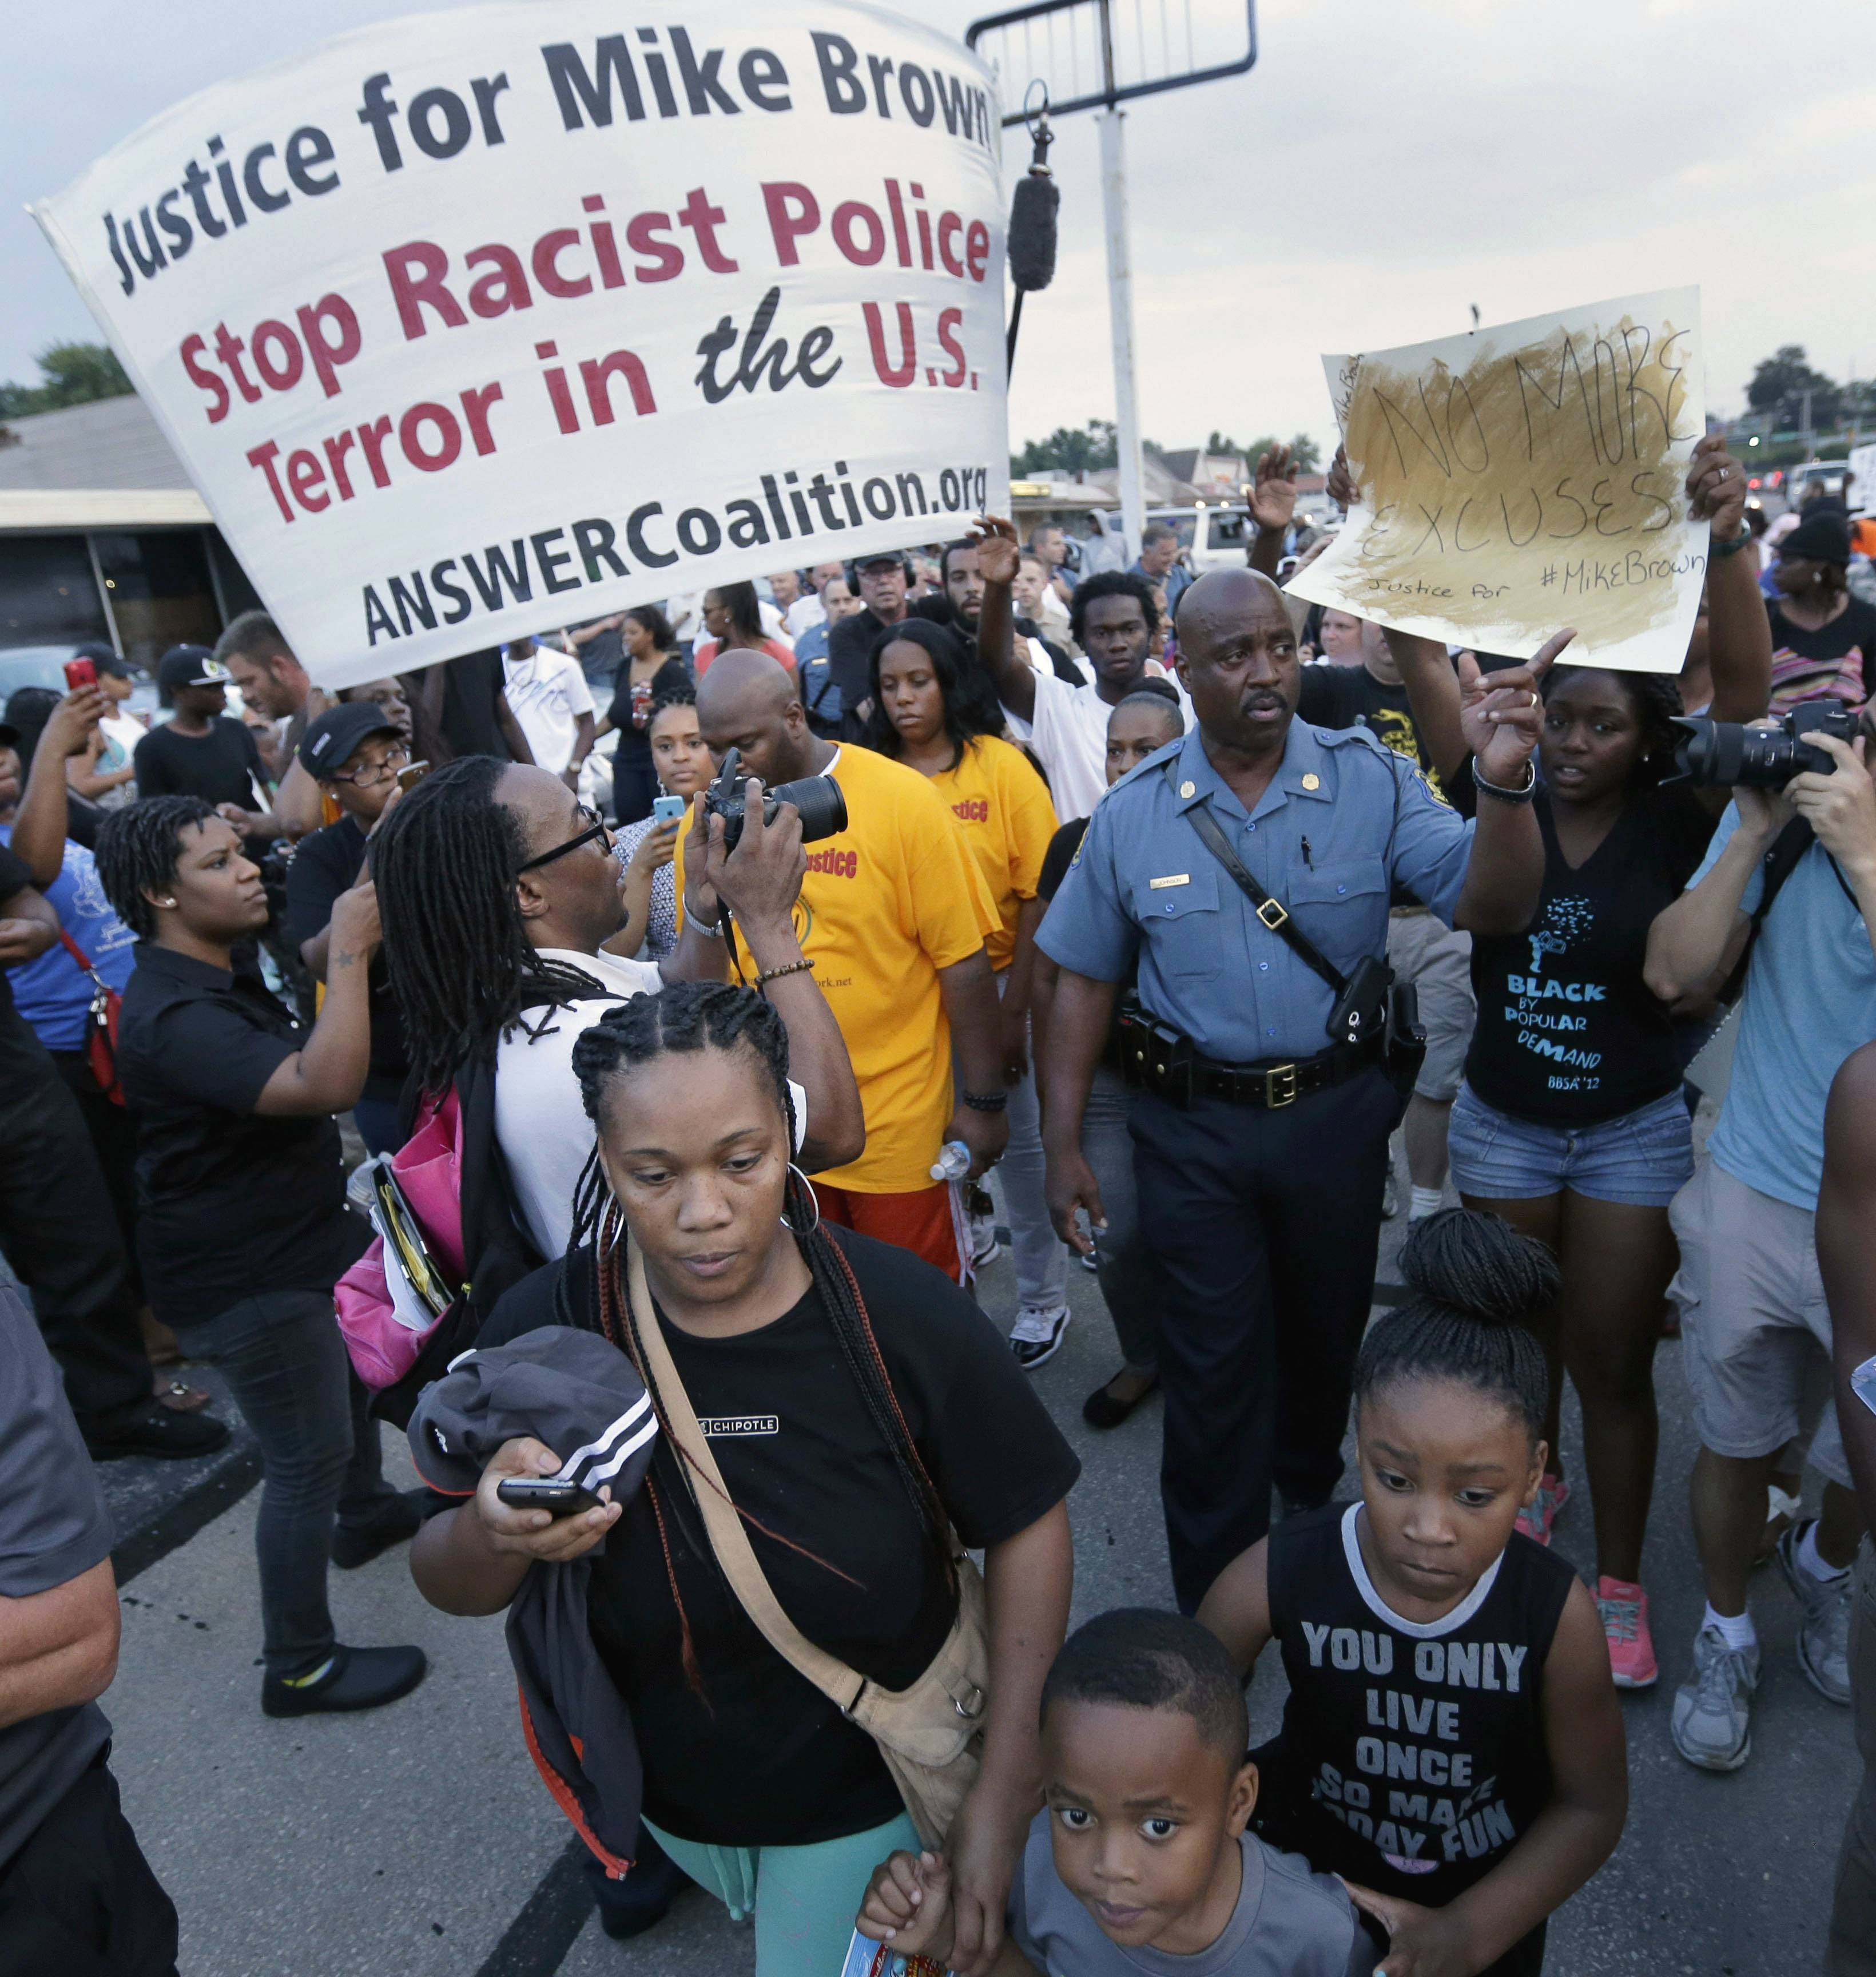 Ferguson city council says it plans review board